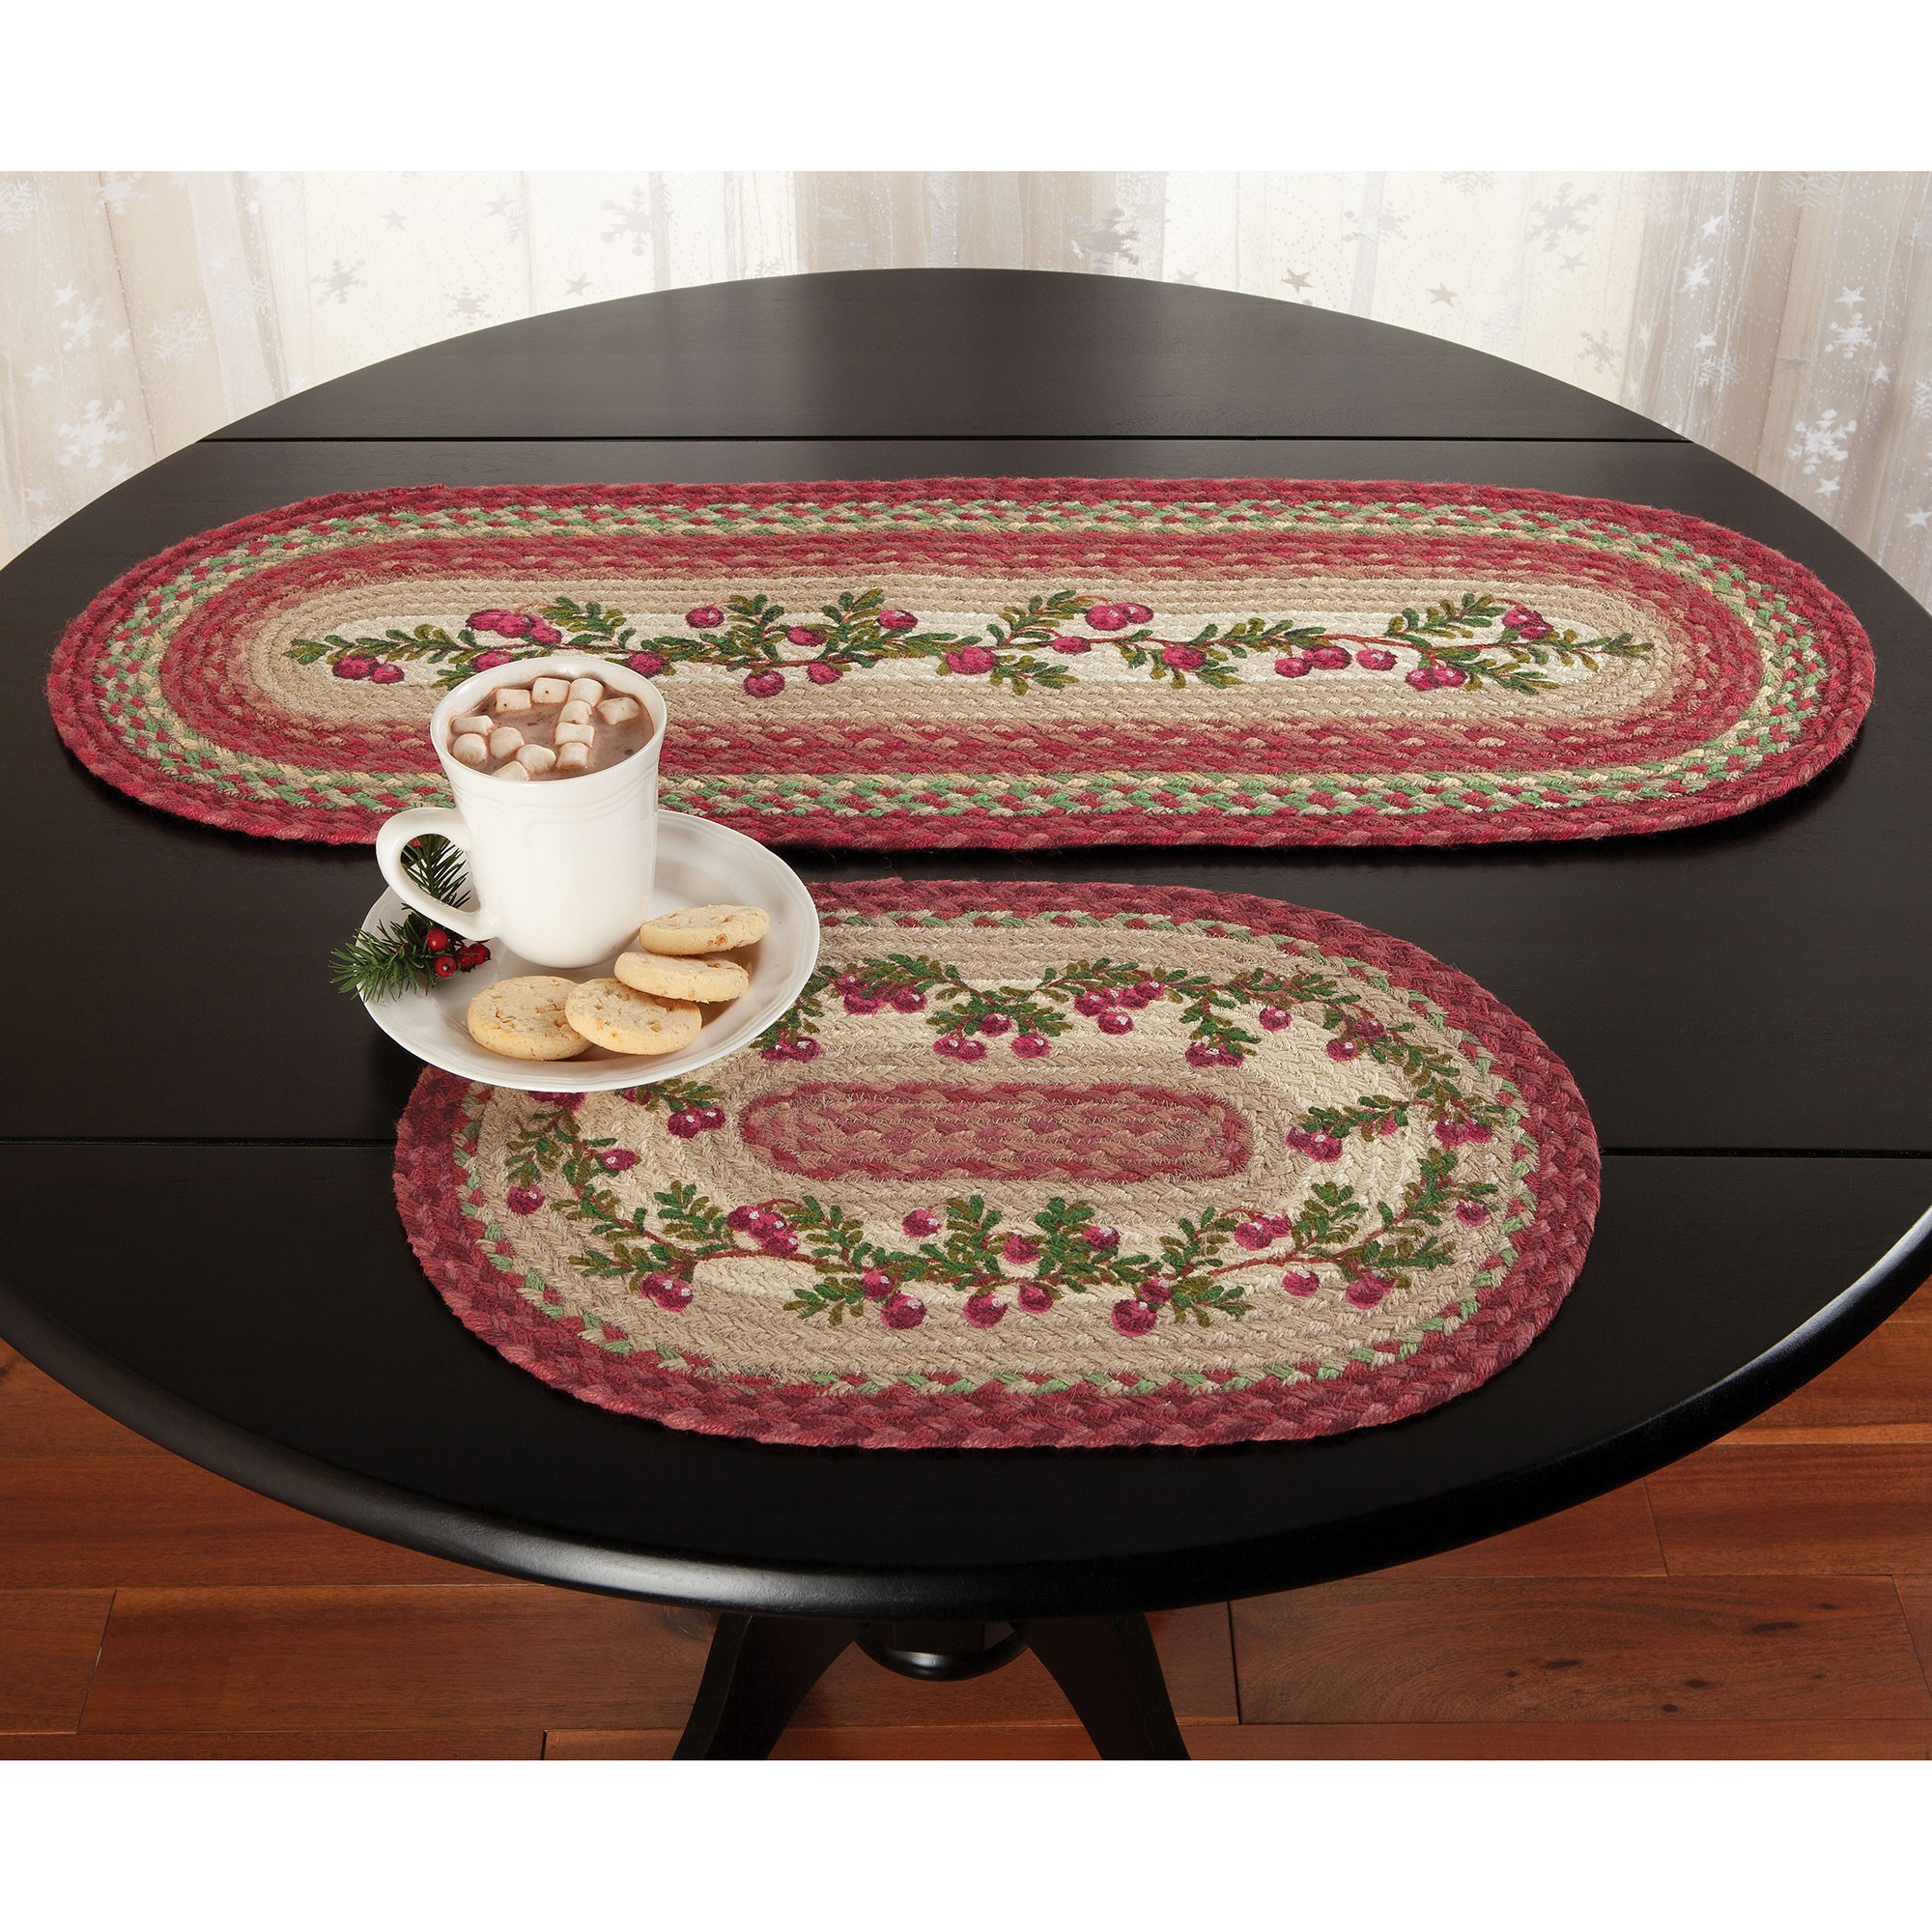 holiday cranberry braided jute tabletop country table decor runner and placemat accent accents patio chairs cloth placemats high end coffee giant umbrella wrought iron tables with